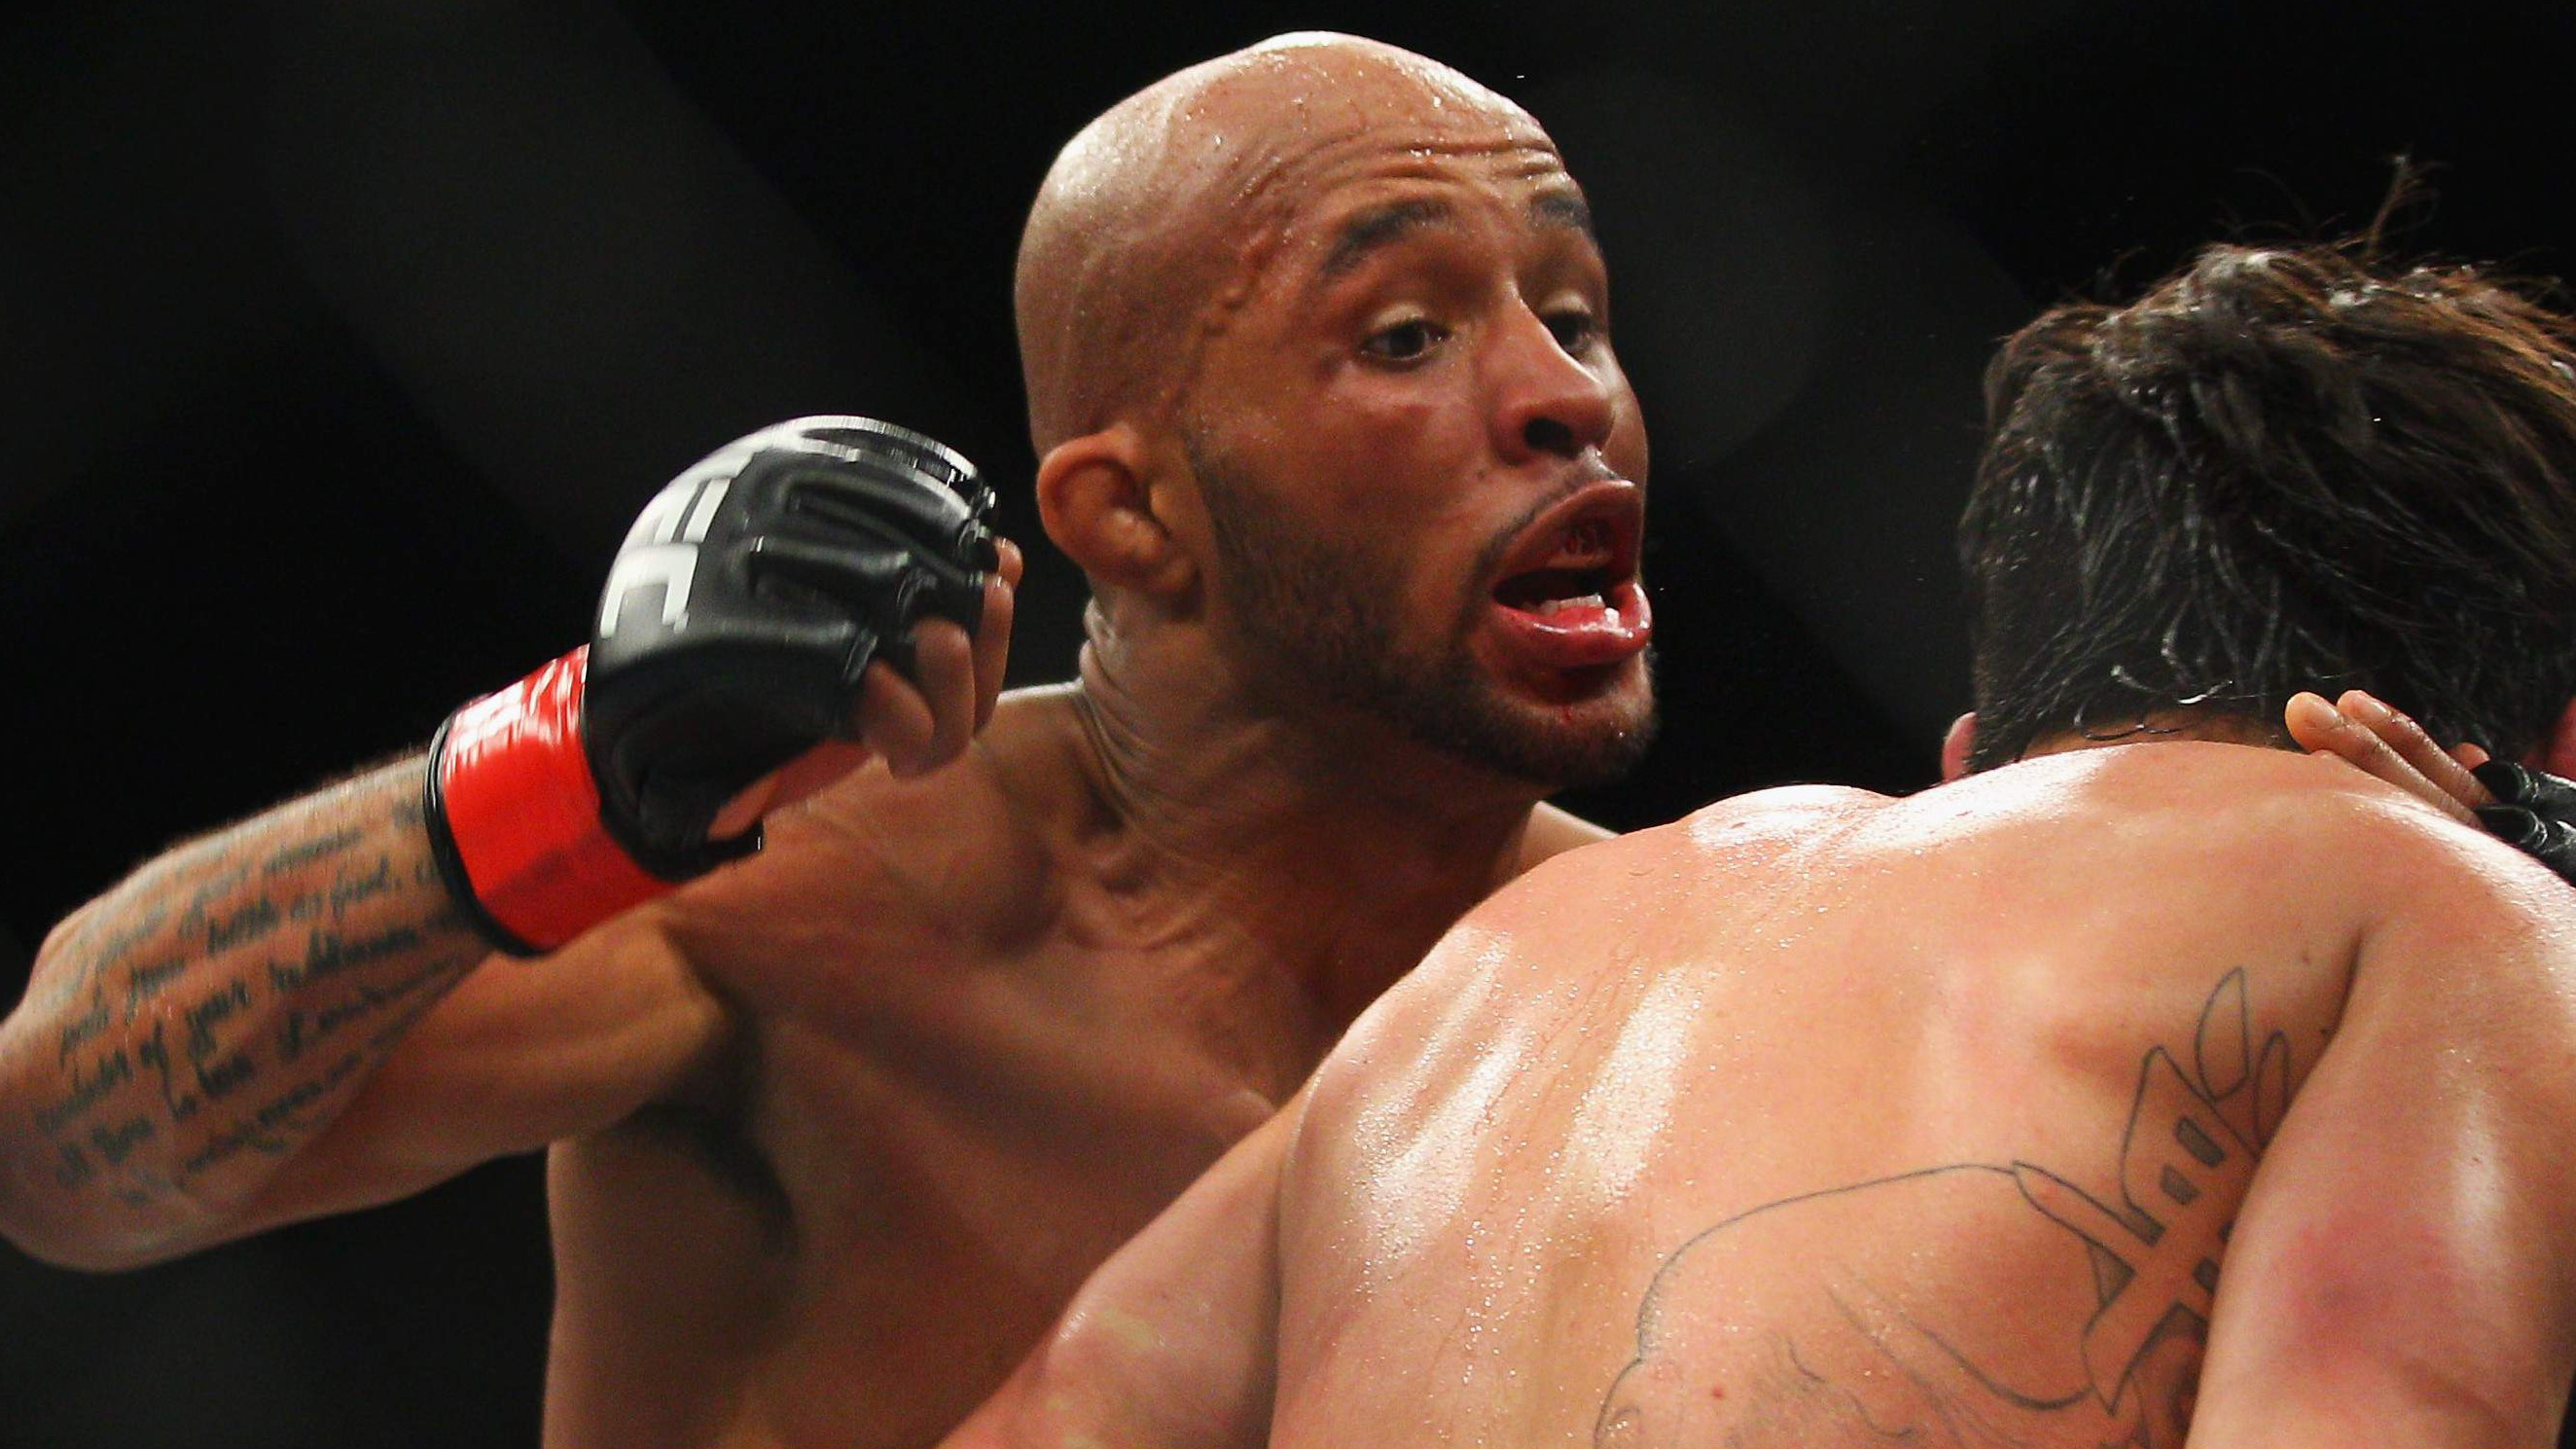 Demetrious Johnson takes on John Dodson in the main event of UFC 191 (Getty)